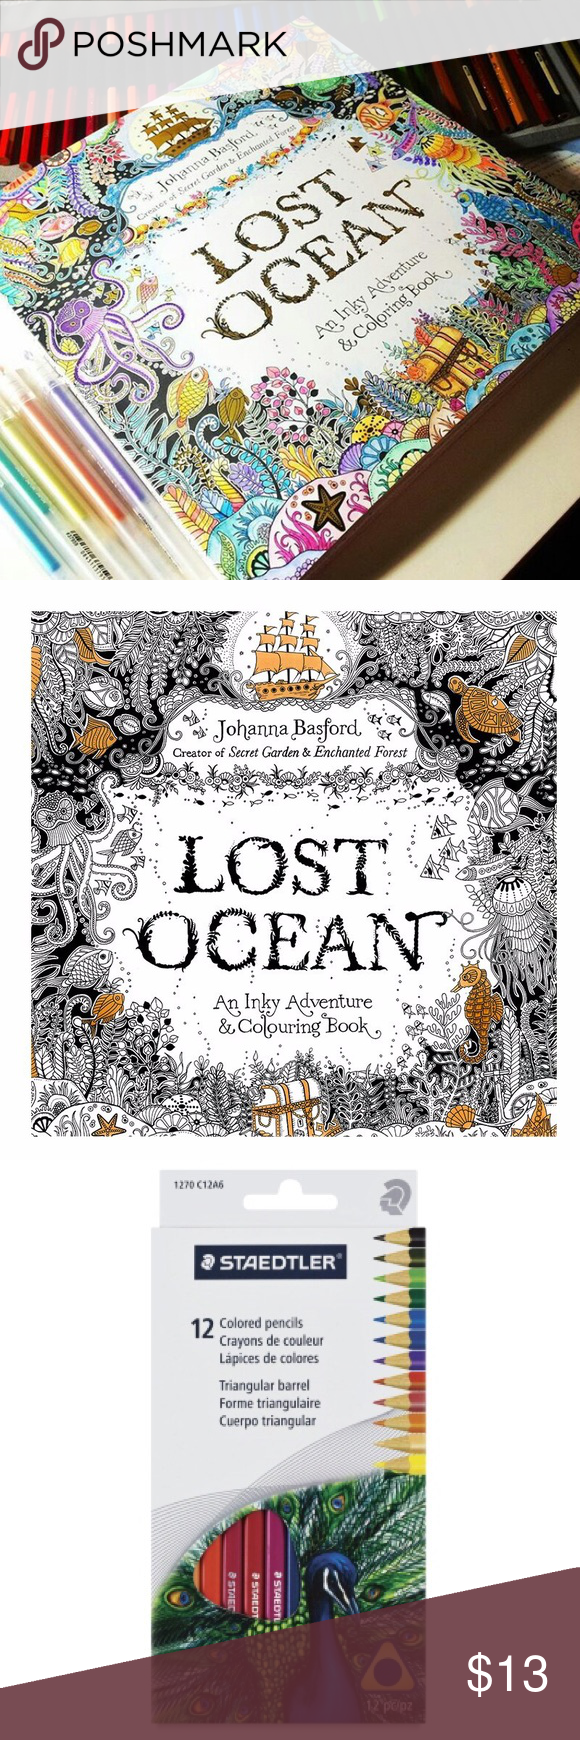 Lost Ocean Coloring Book Pencils Adult Comes With A Pack